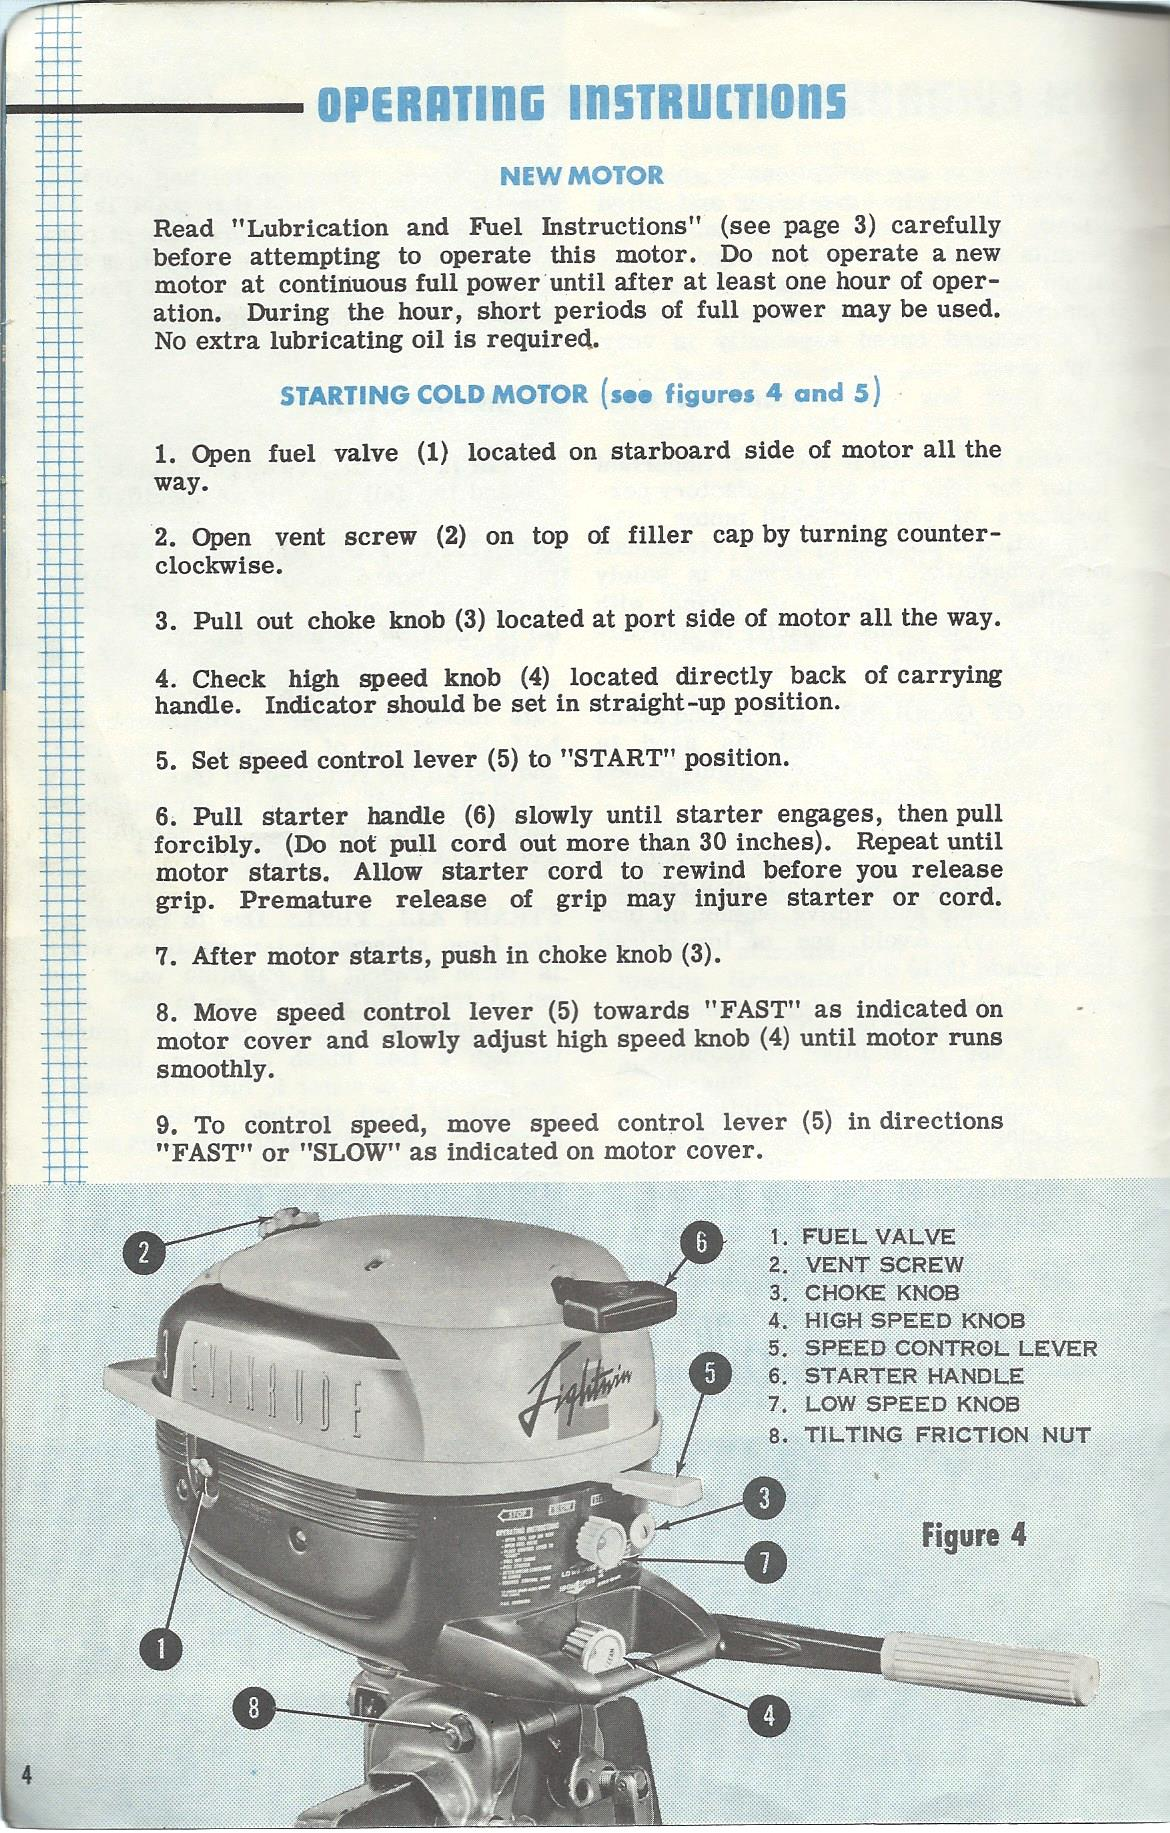 Evinrude Outboard Lightwin 3hp Owners Manual